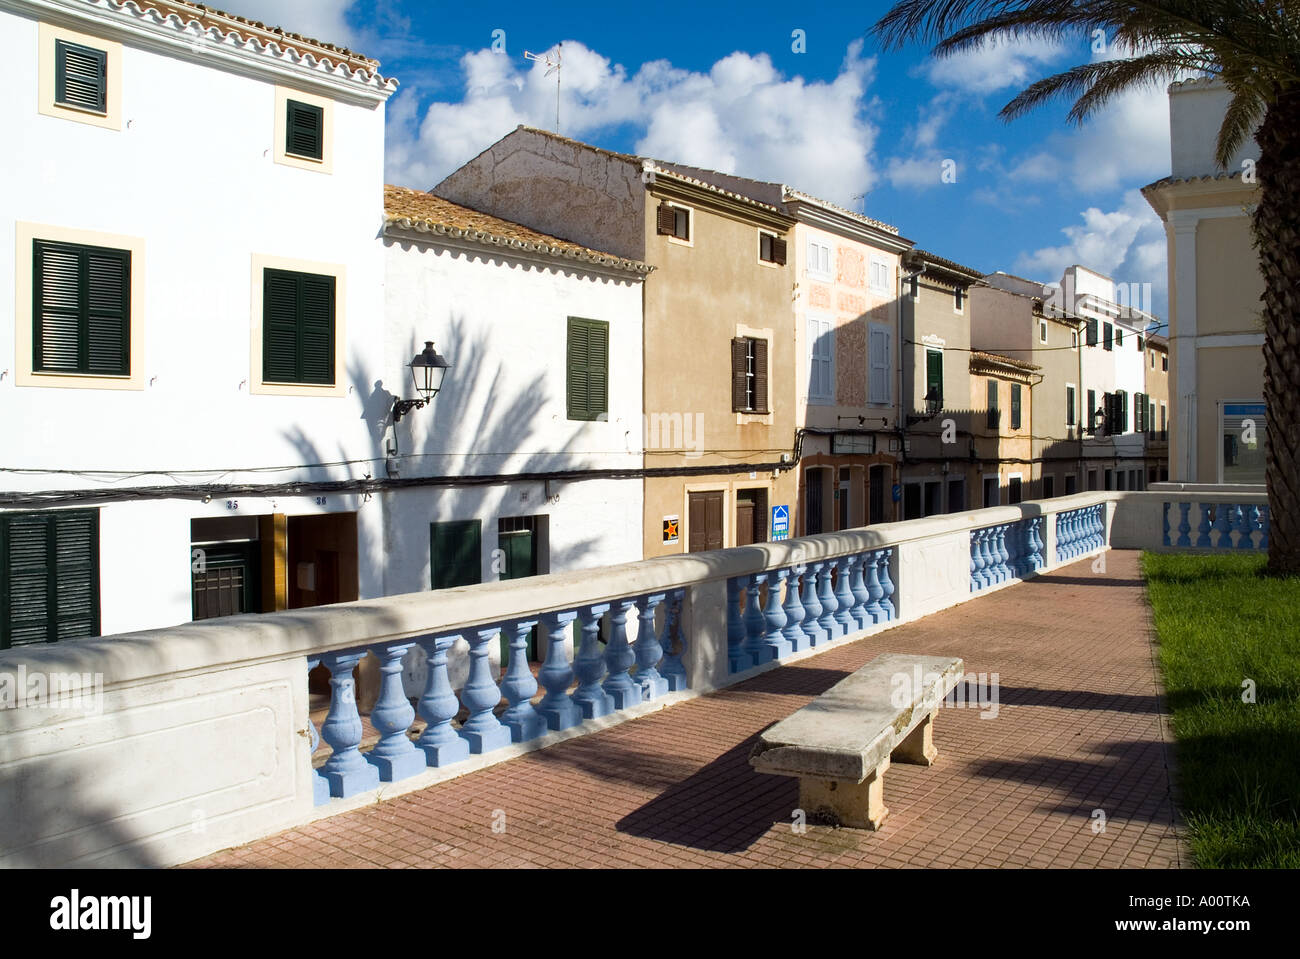 dh Placa Nova ALAYOR MENORCA Old market town houses bench seat plaza - Stock Image